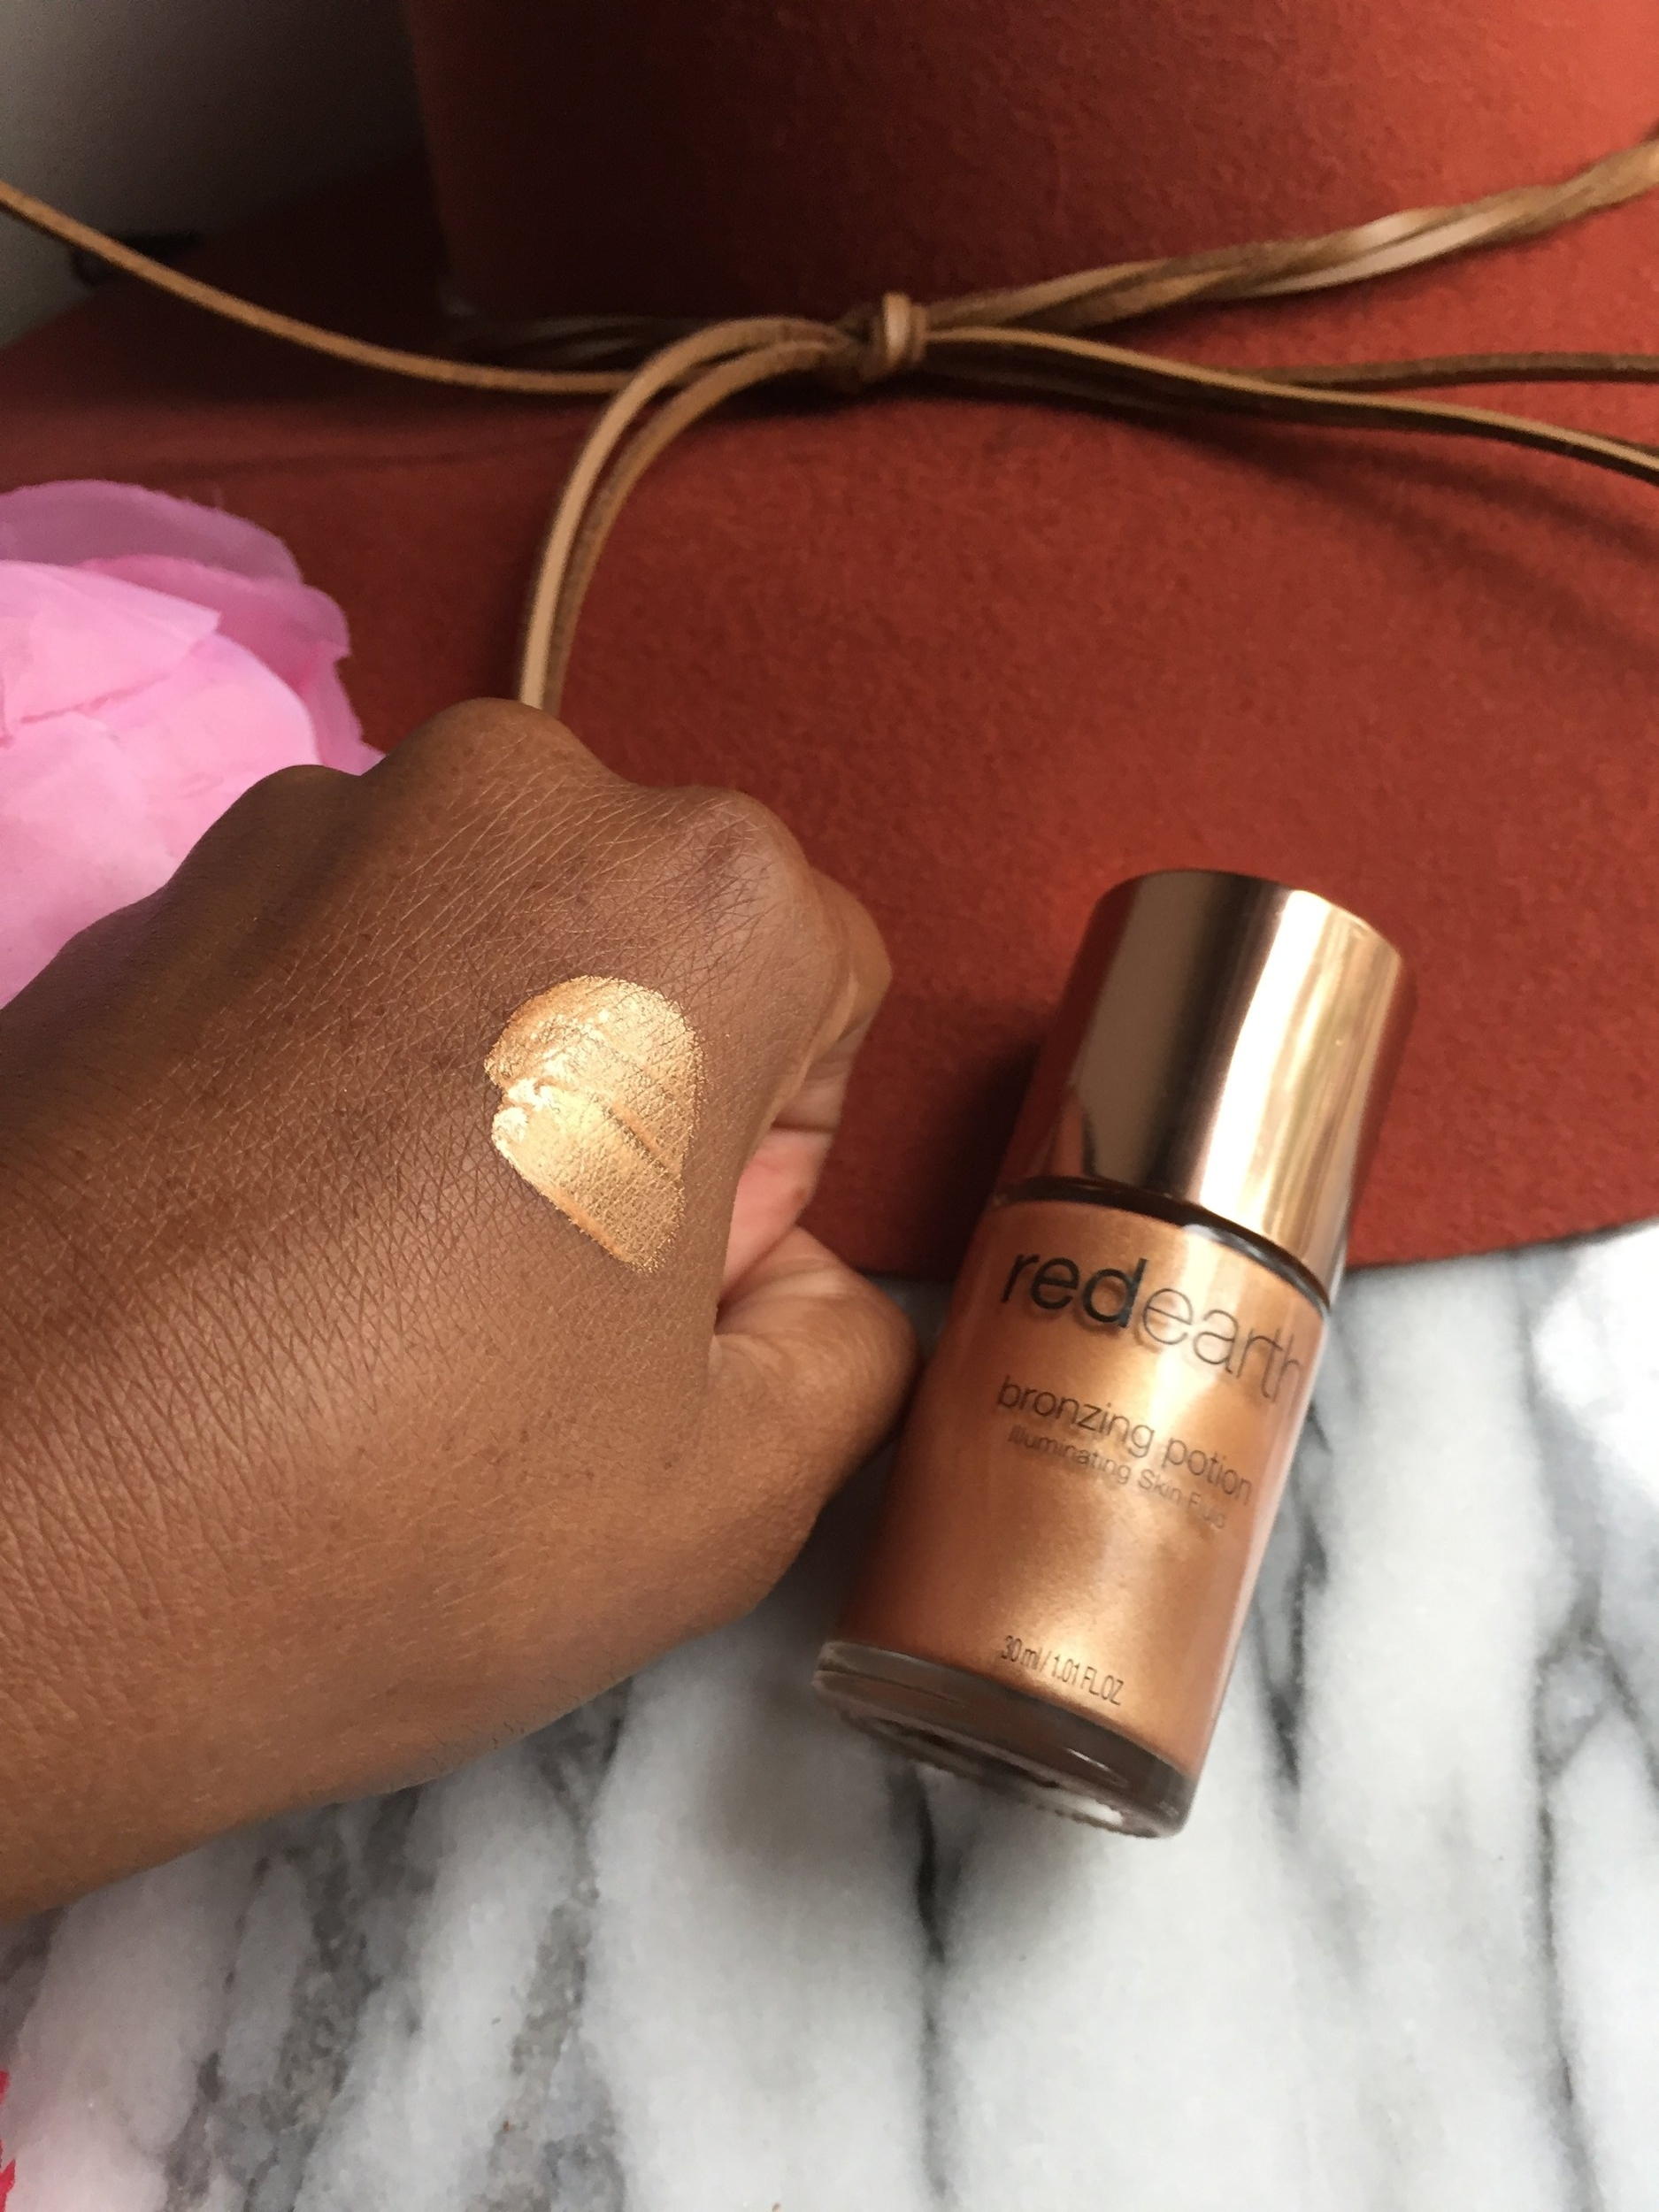 RedEarth Bronzing Potion in Summer Love